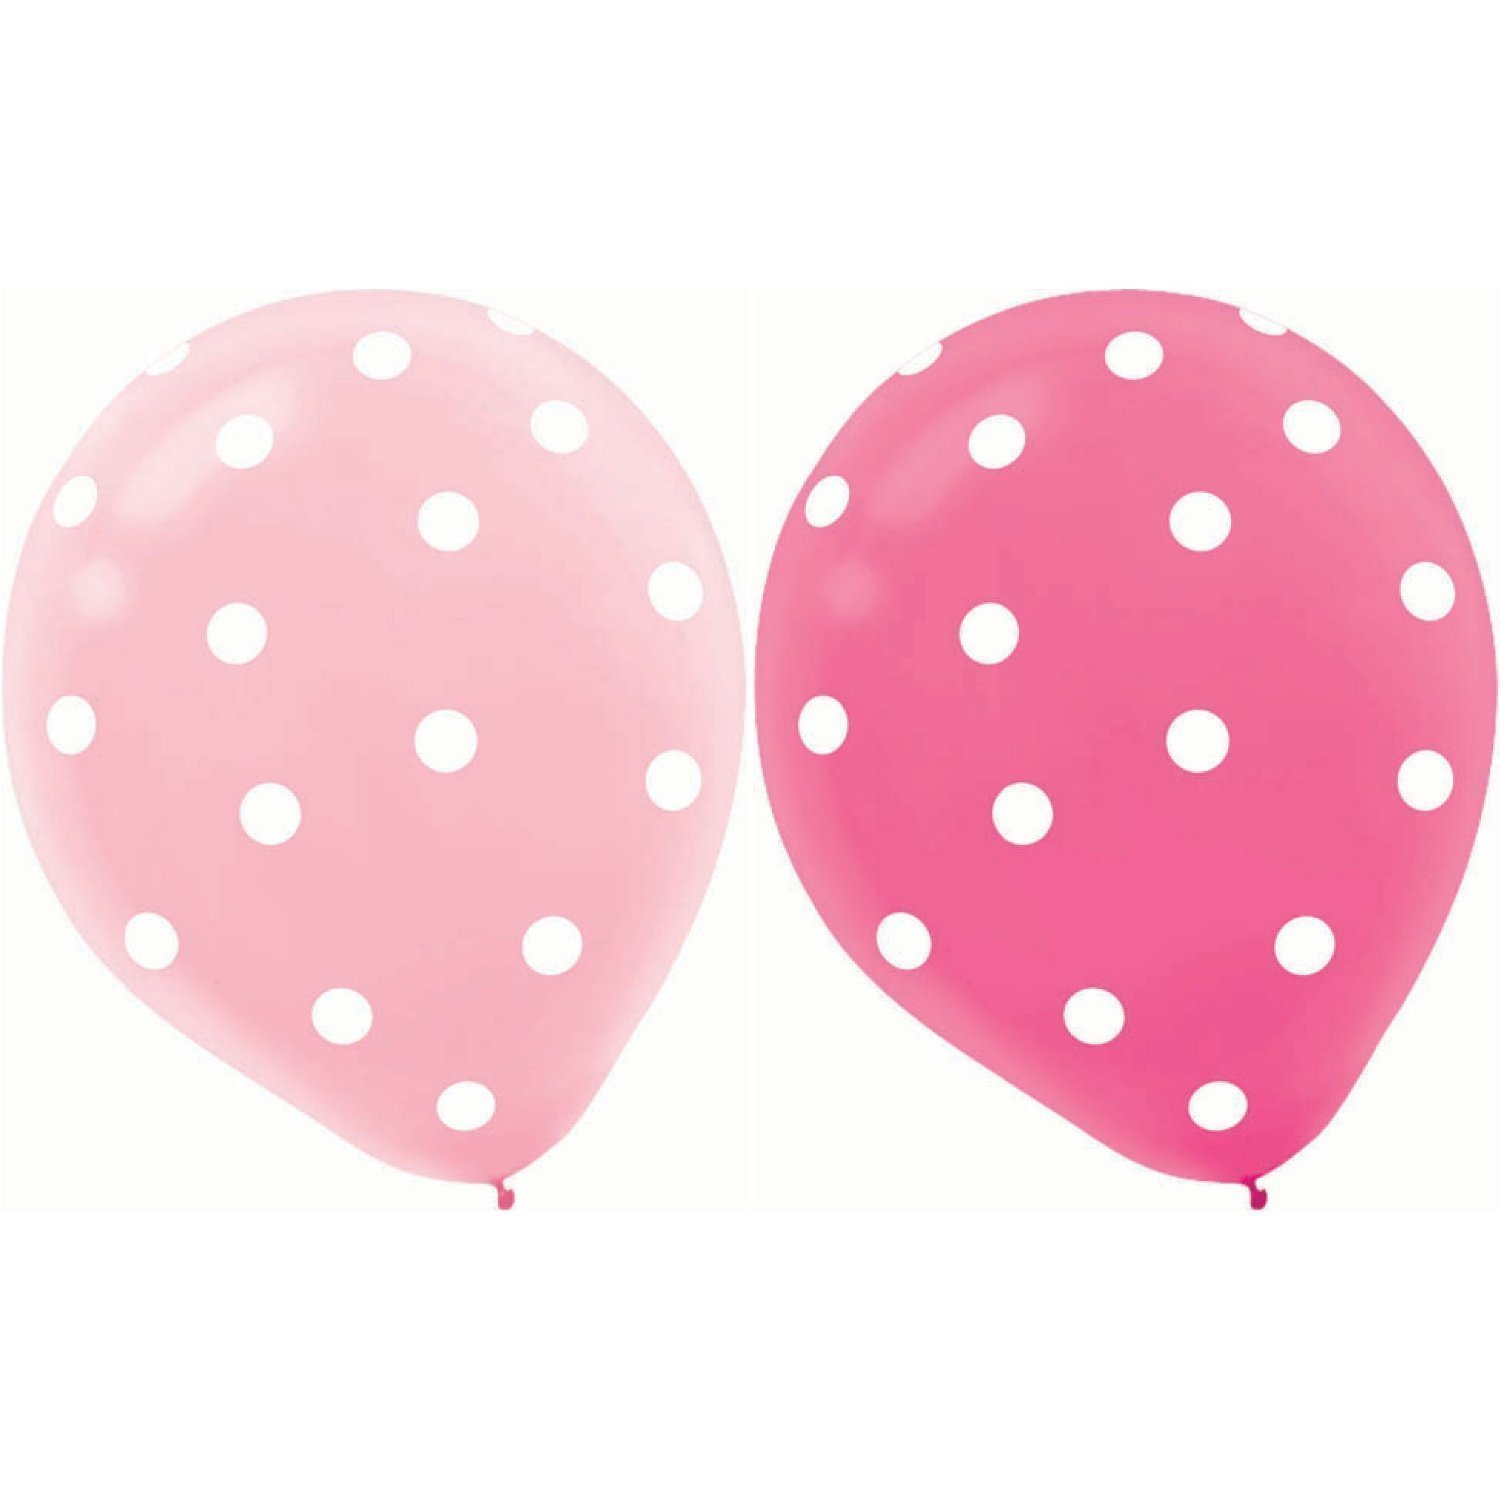 Hosaire 20 Pcs Balloons Round Helium 12 Inch Pink Polka Dot Balloons Mix Pink Rose